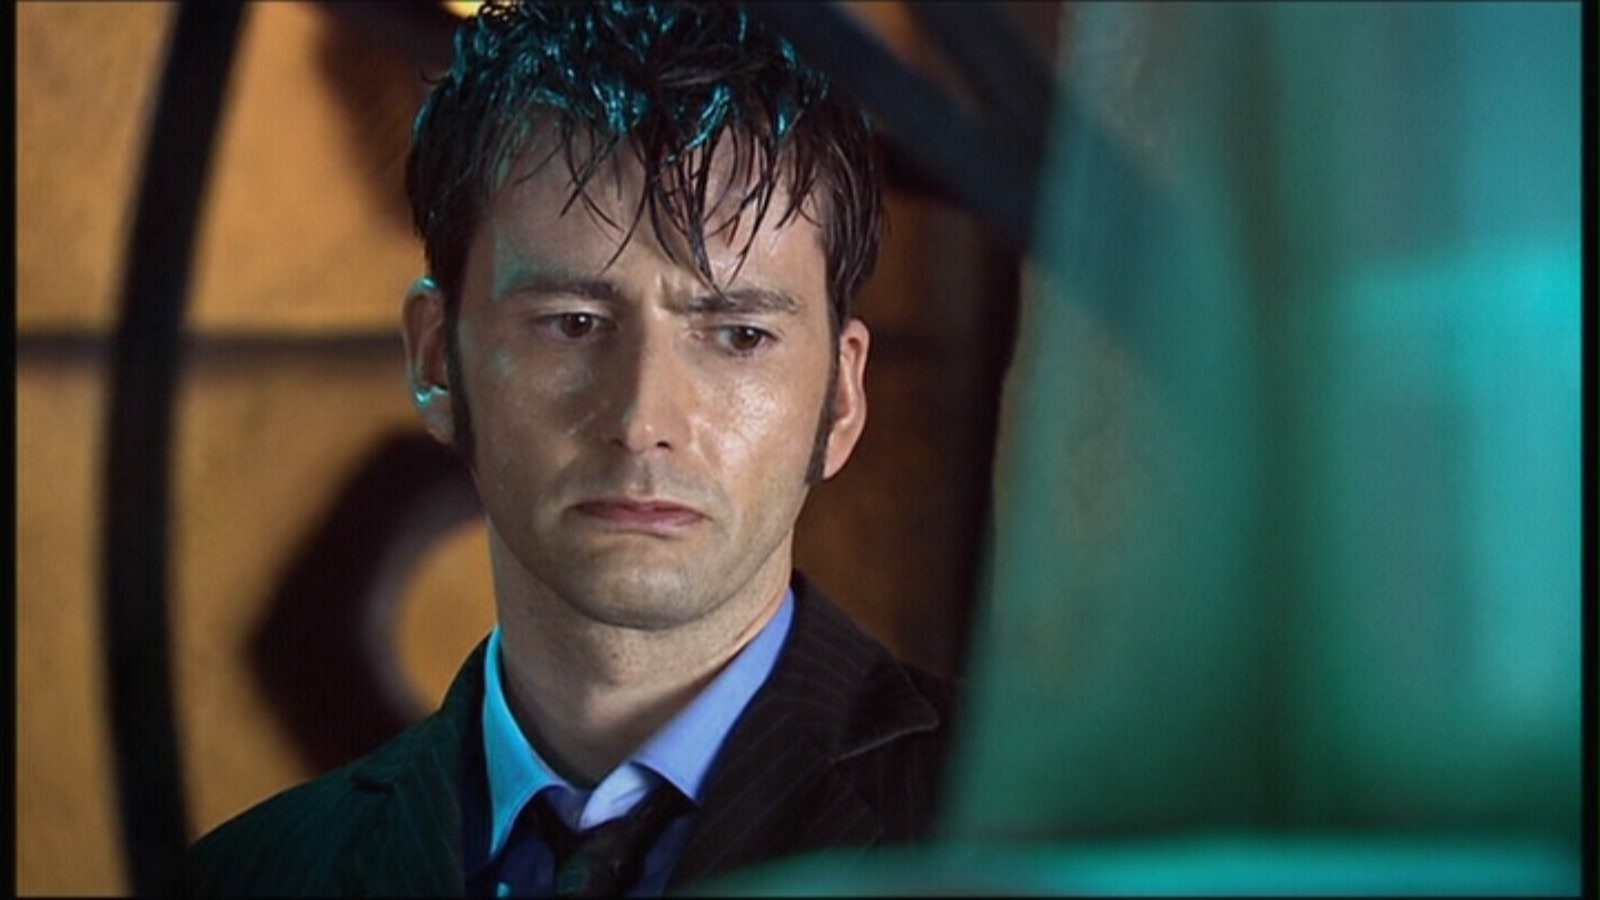 4x13 Journey's End - Doctor Who Image (21332242) - Fanpop